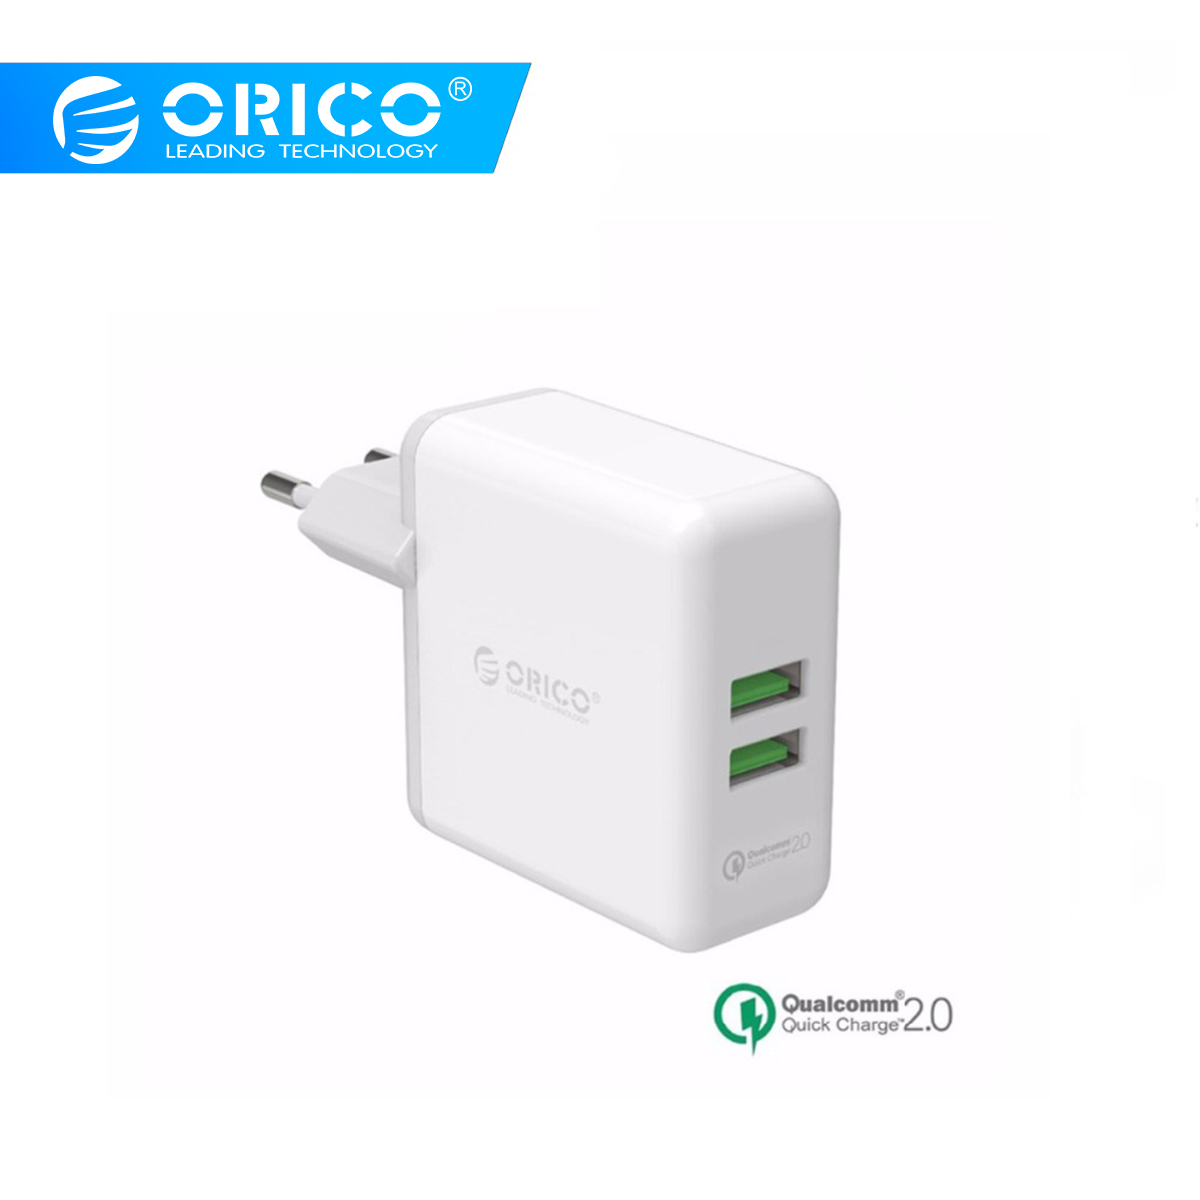 ORICO QCK-2U 2 Port Compact and Portable  Travel Wall Charger With Qualcomm Quick Charge 2.0 electronics